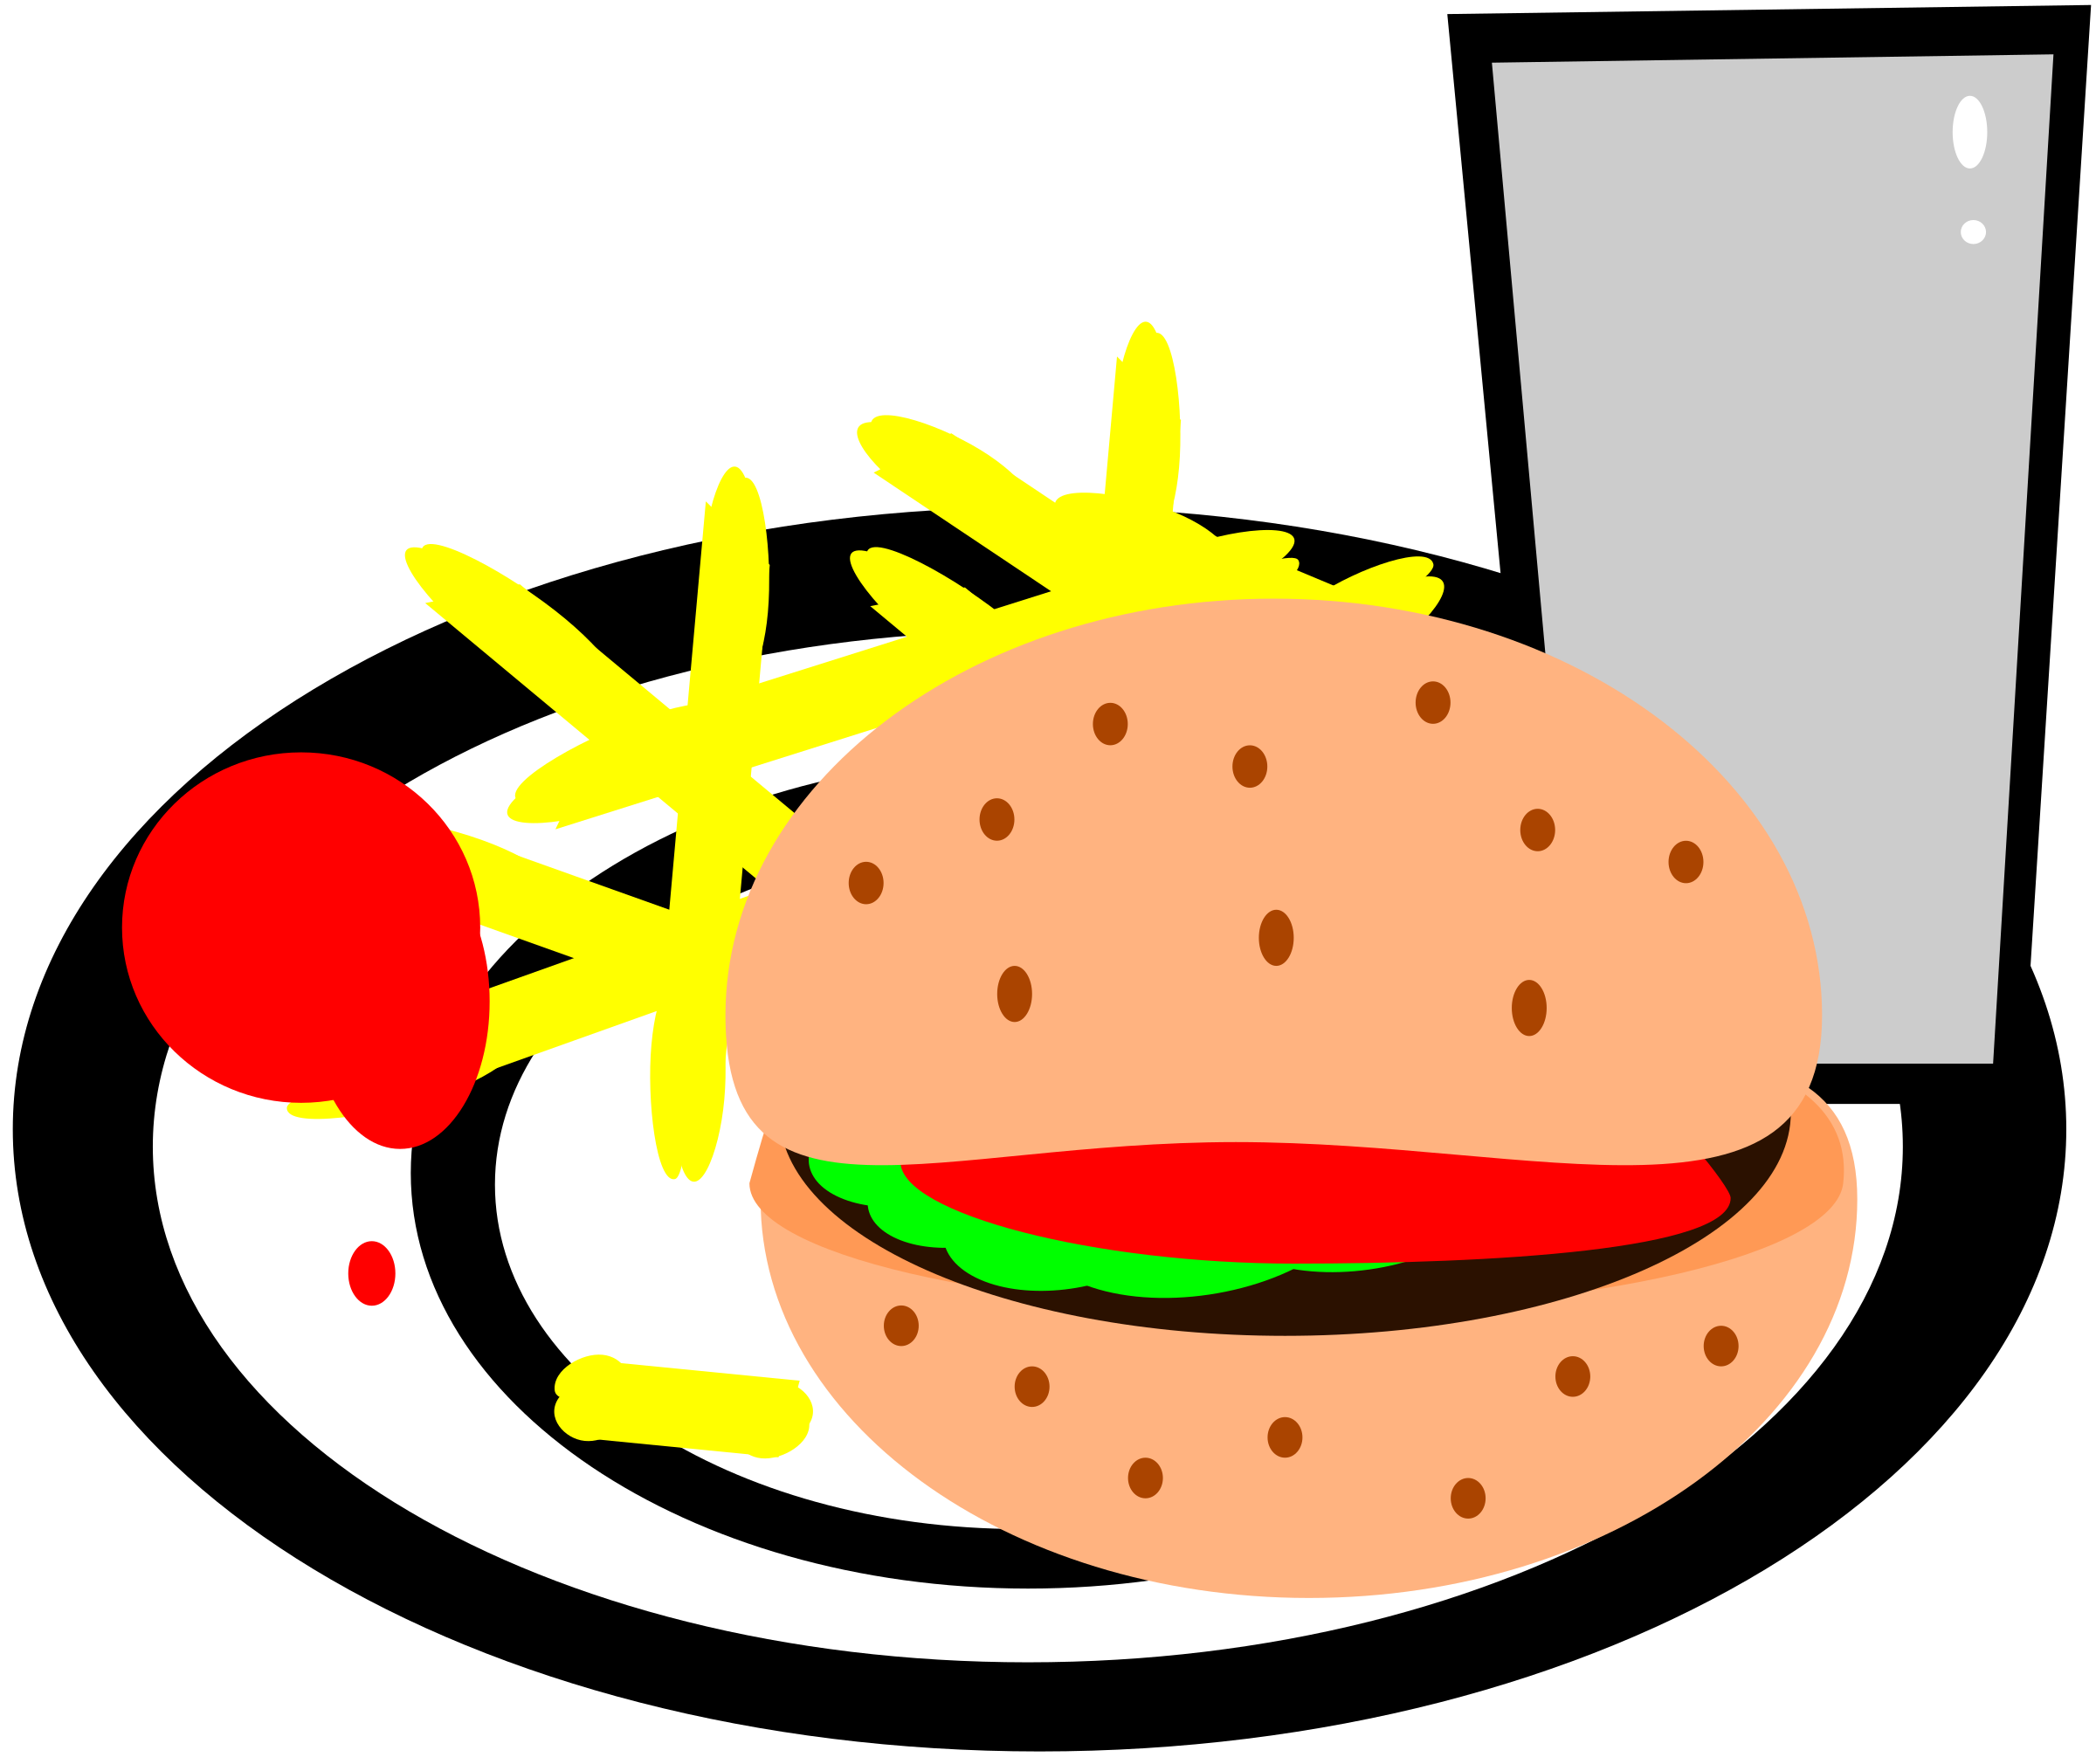 Burger clipart burger chip Burger burger Clipart chips chips